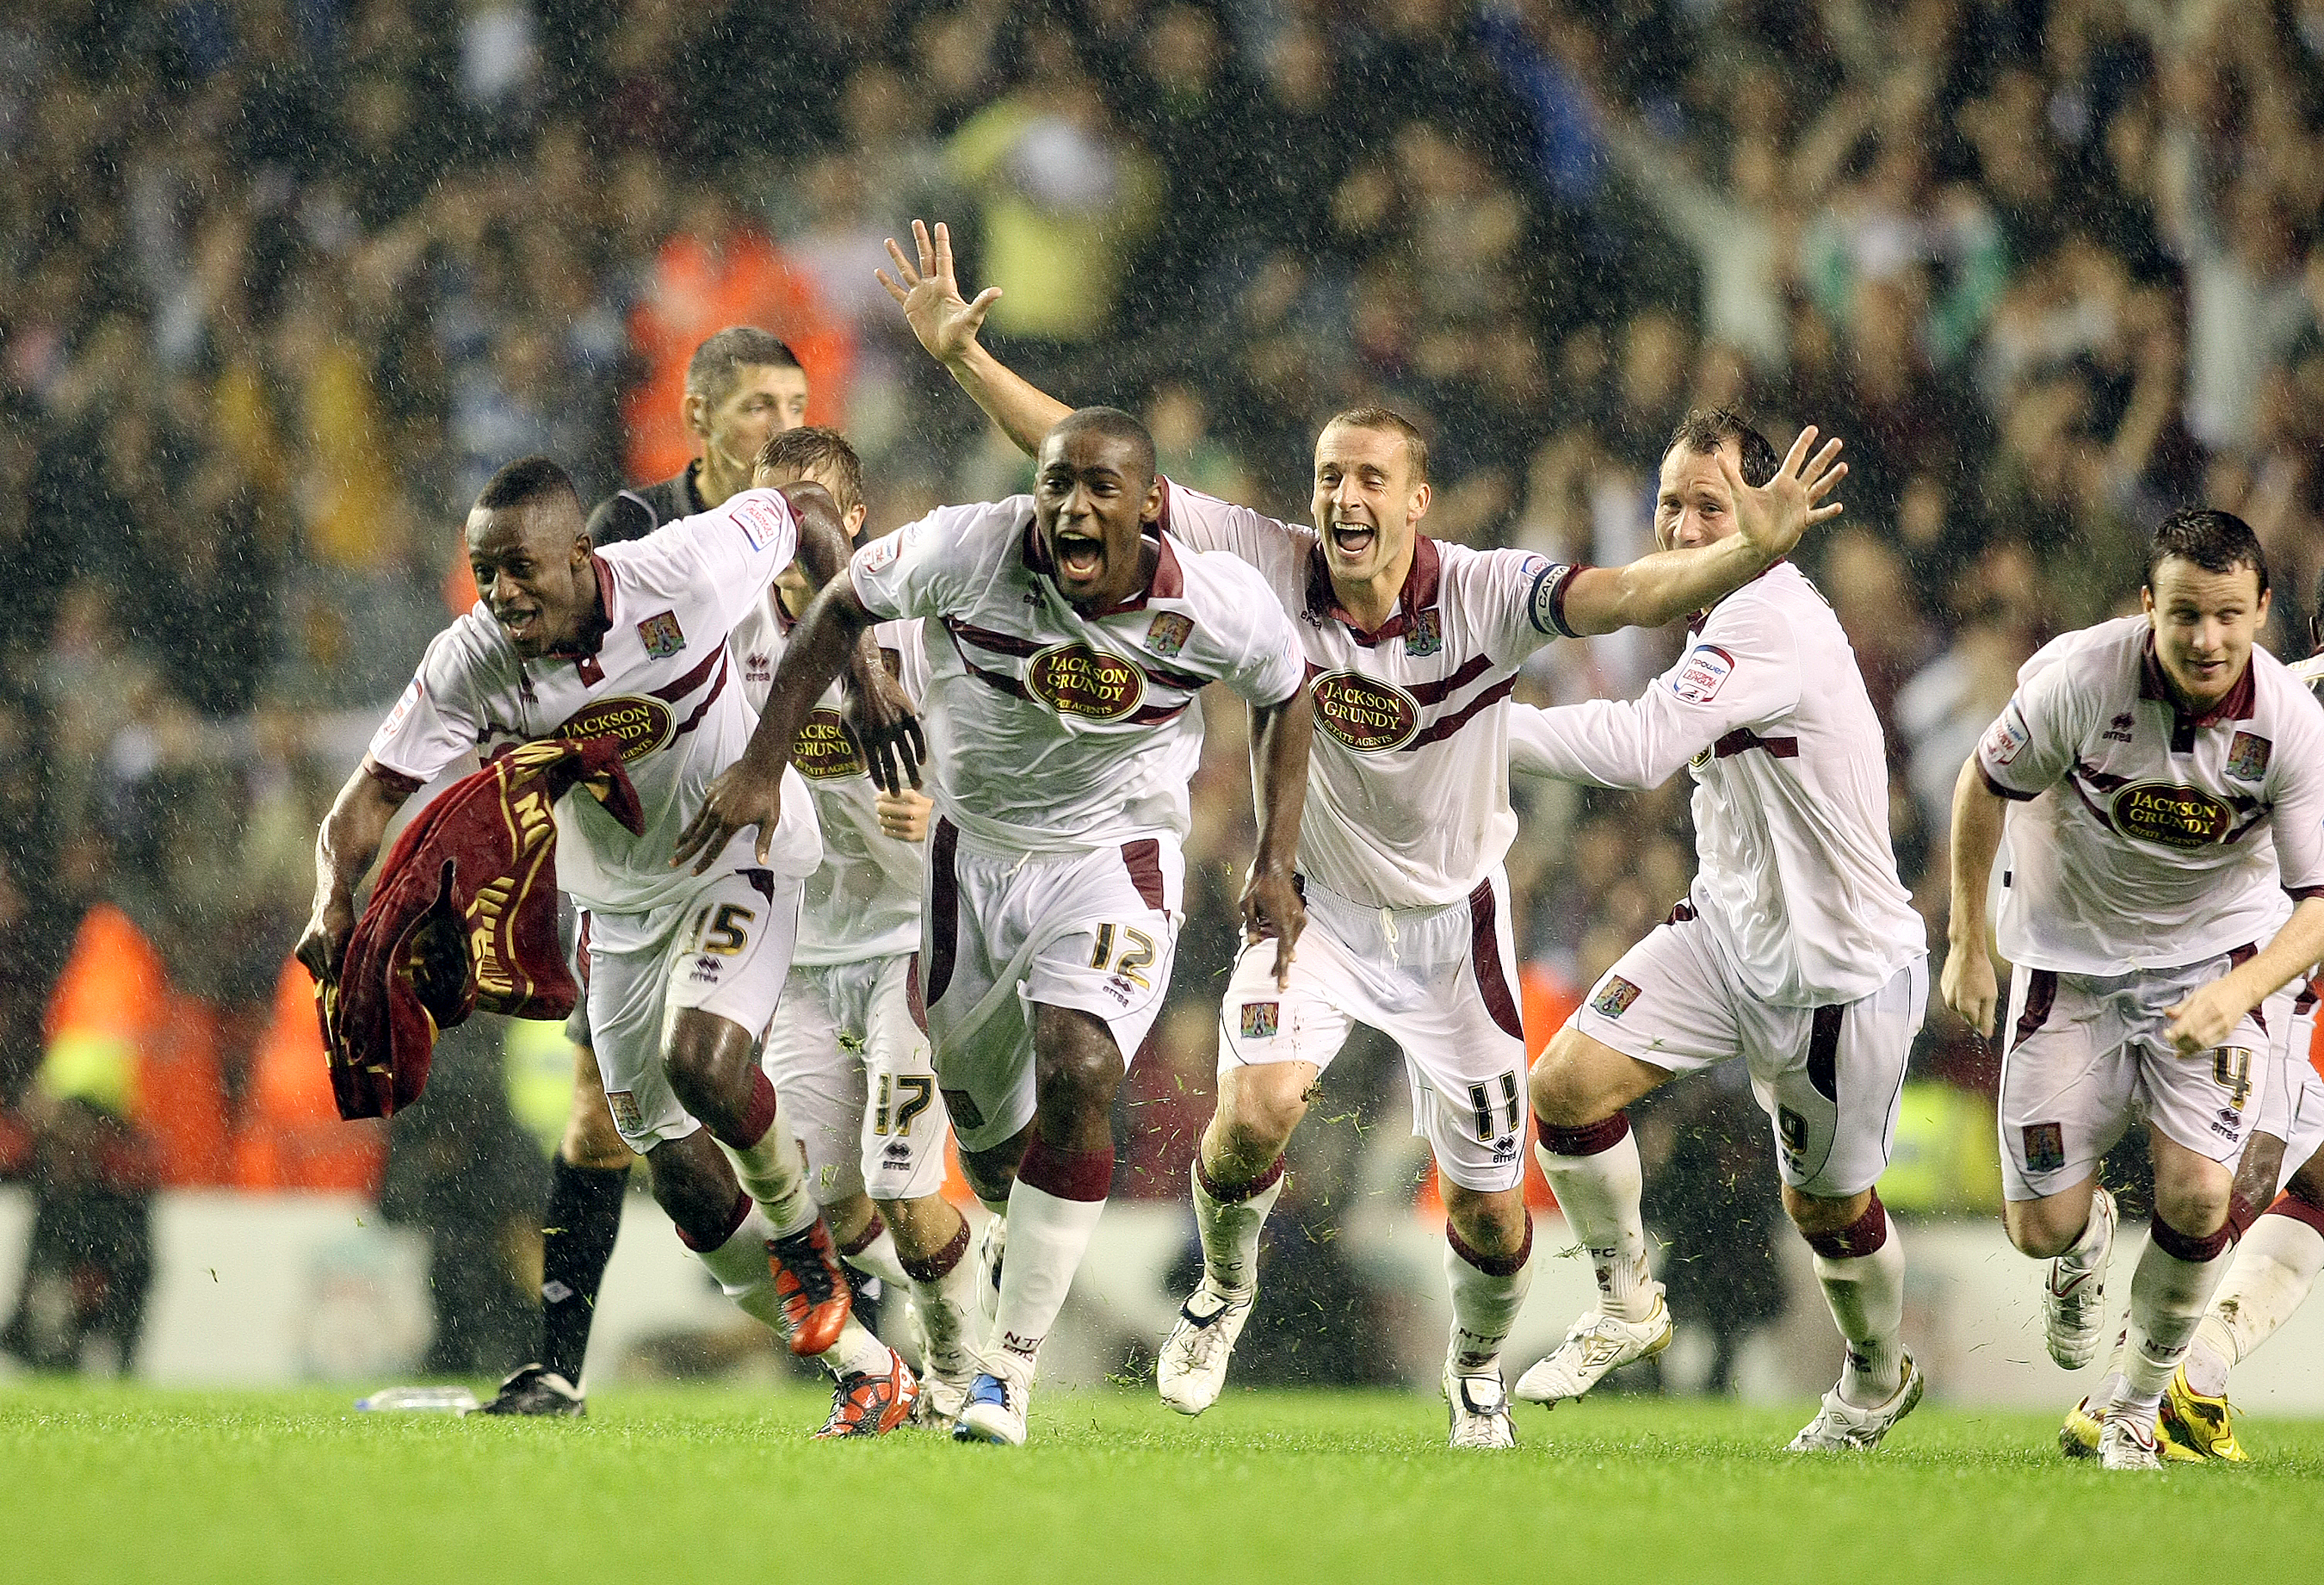 LIVERPOOL, ENGLAND - SEPTEMBER 22:  Northampton Town players celebrate victory after Abdul Osman had scored the winning penalty in the penalty shoot out during the Carling Cup Third Round match between Liverpool and Northampton Town at Anfield on Septembe